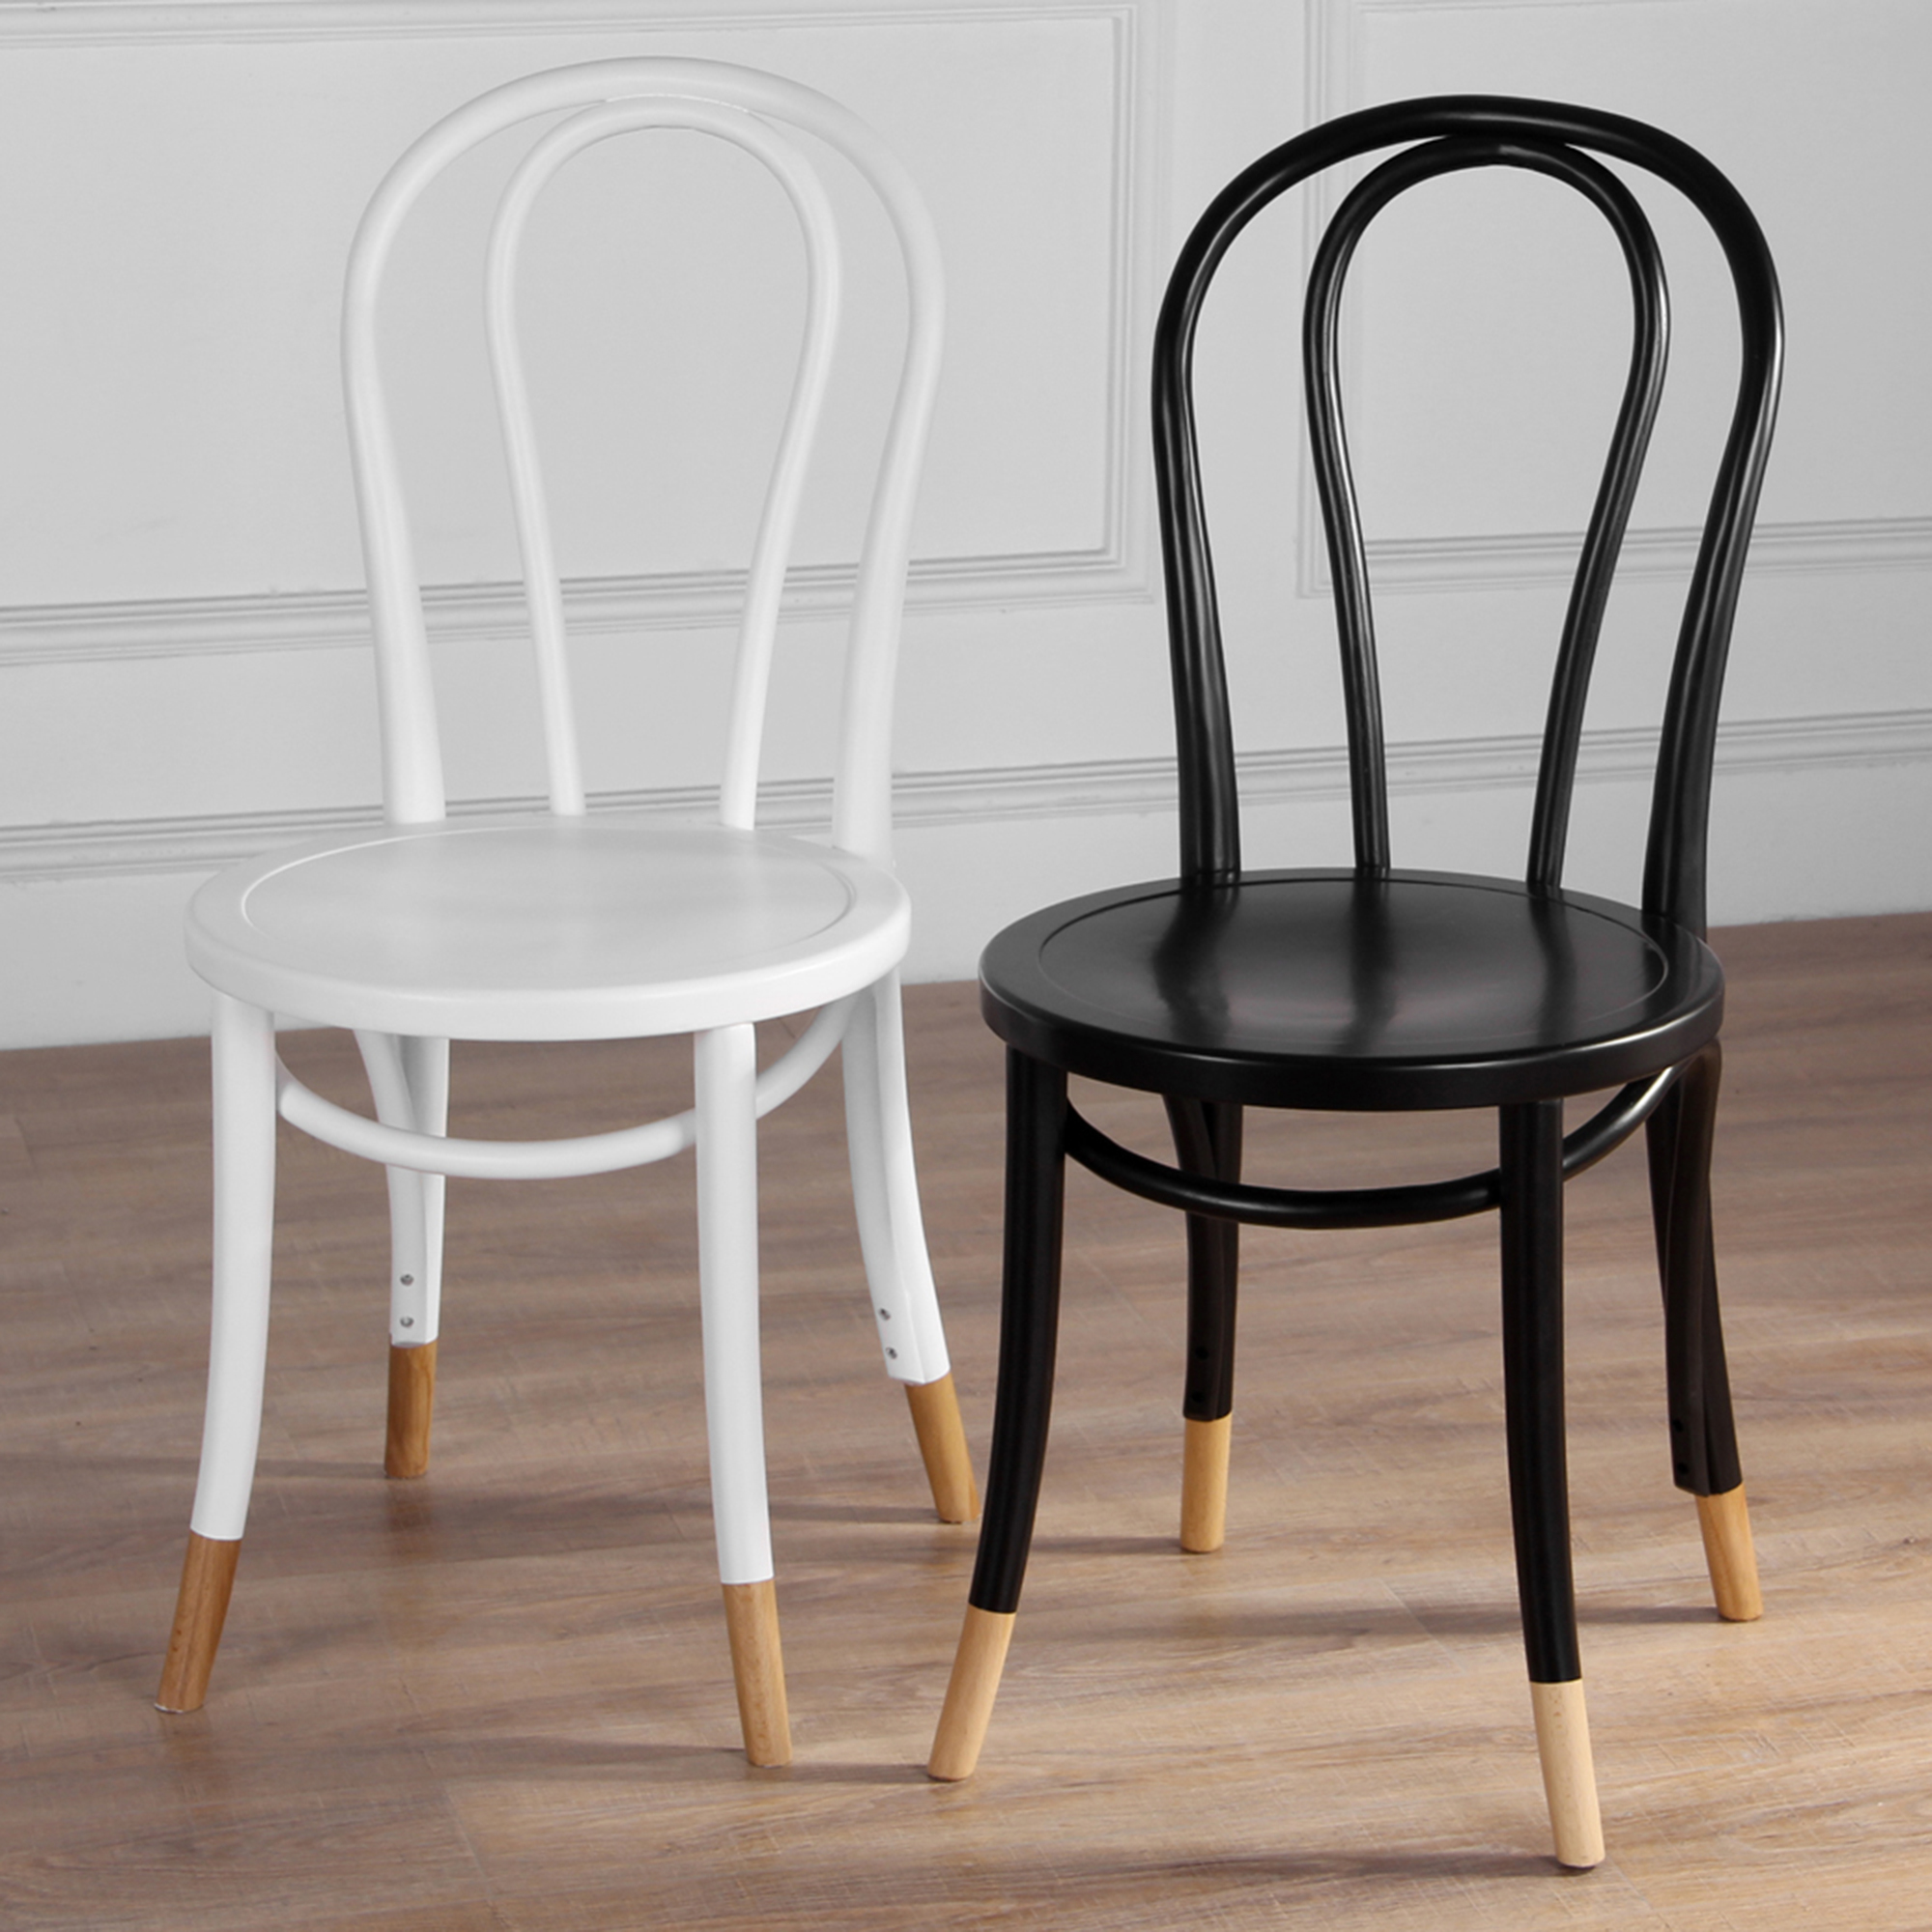 new set of 2 replica bentwood chairs with natural socks ebay